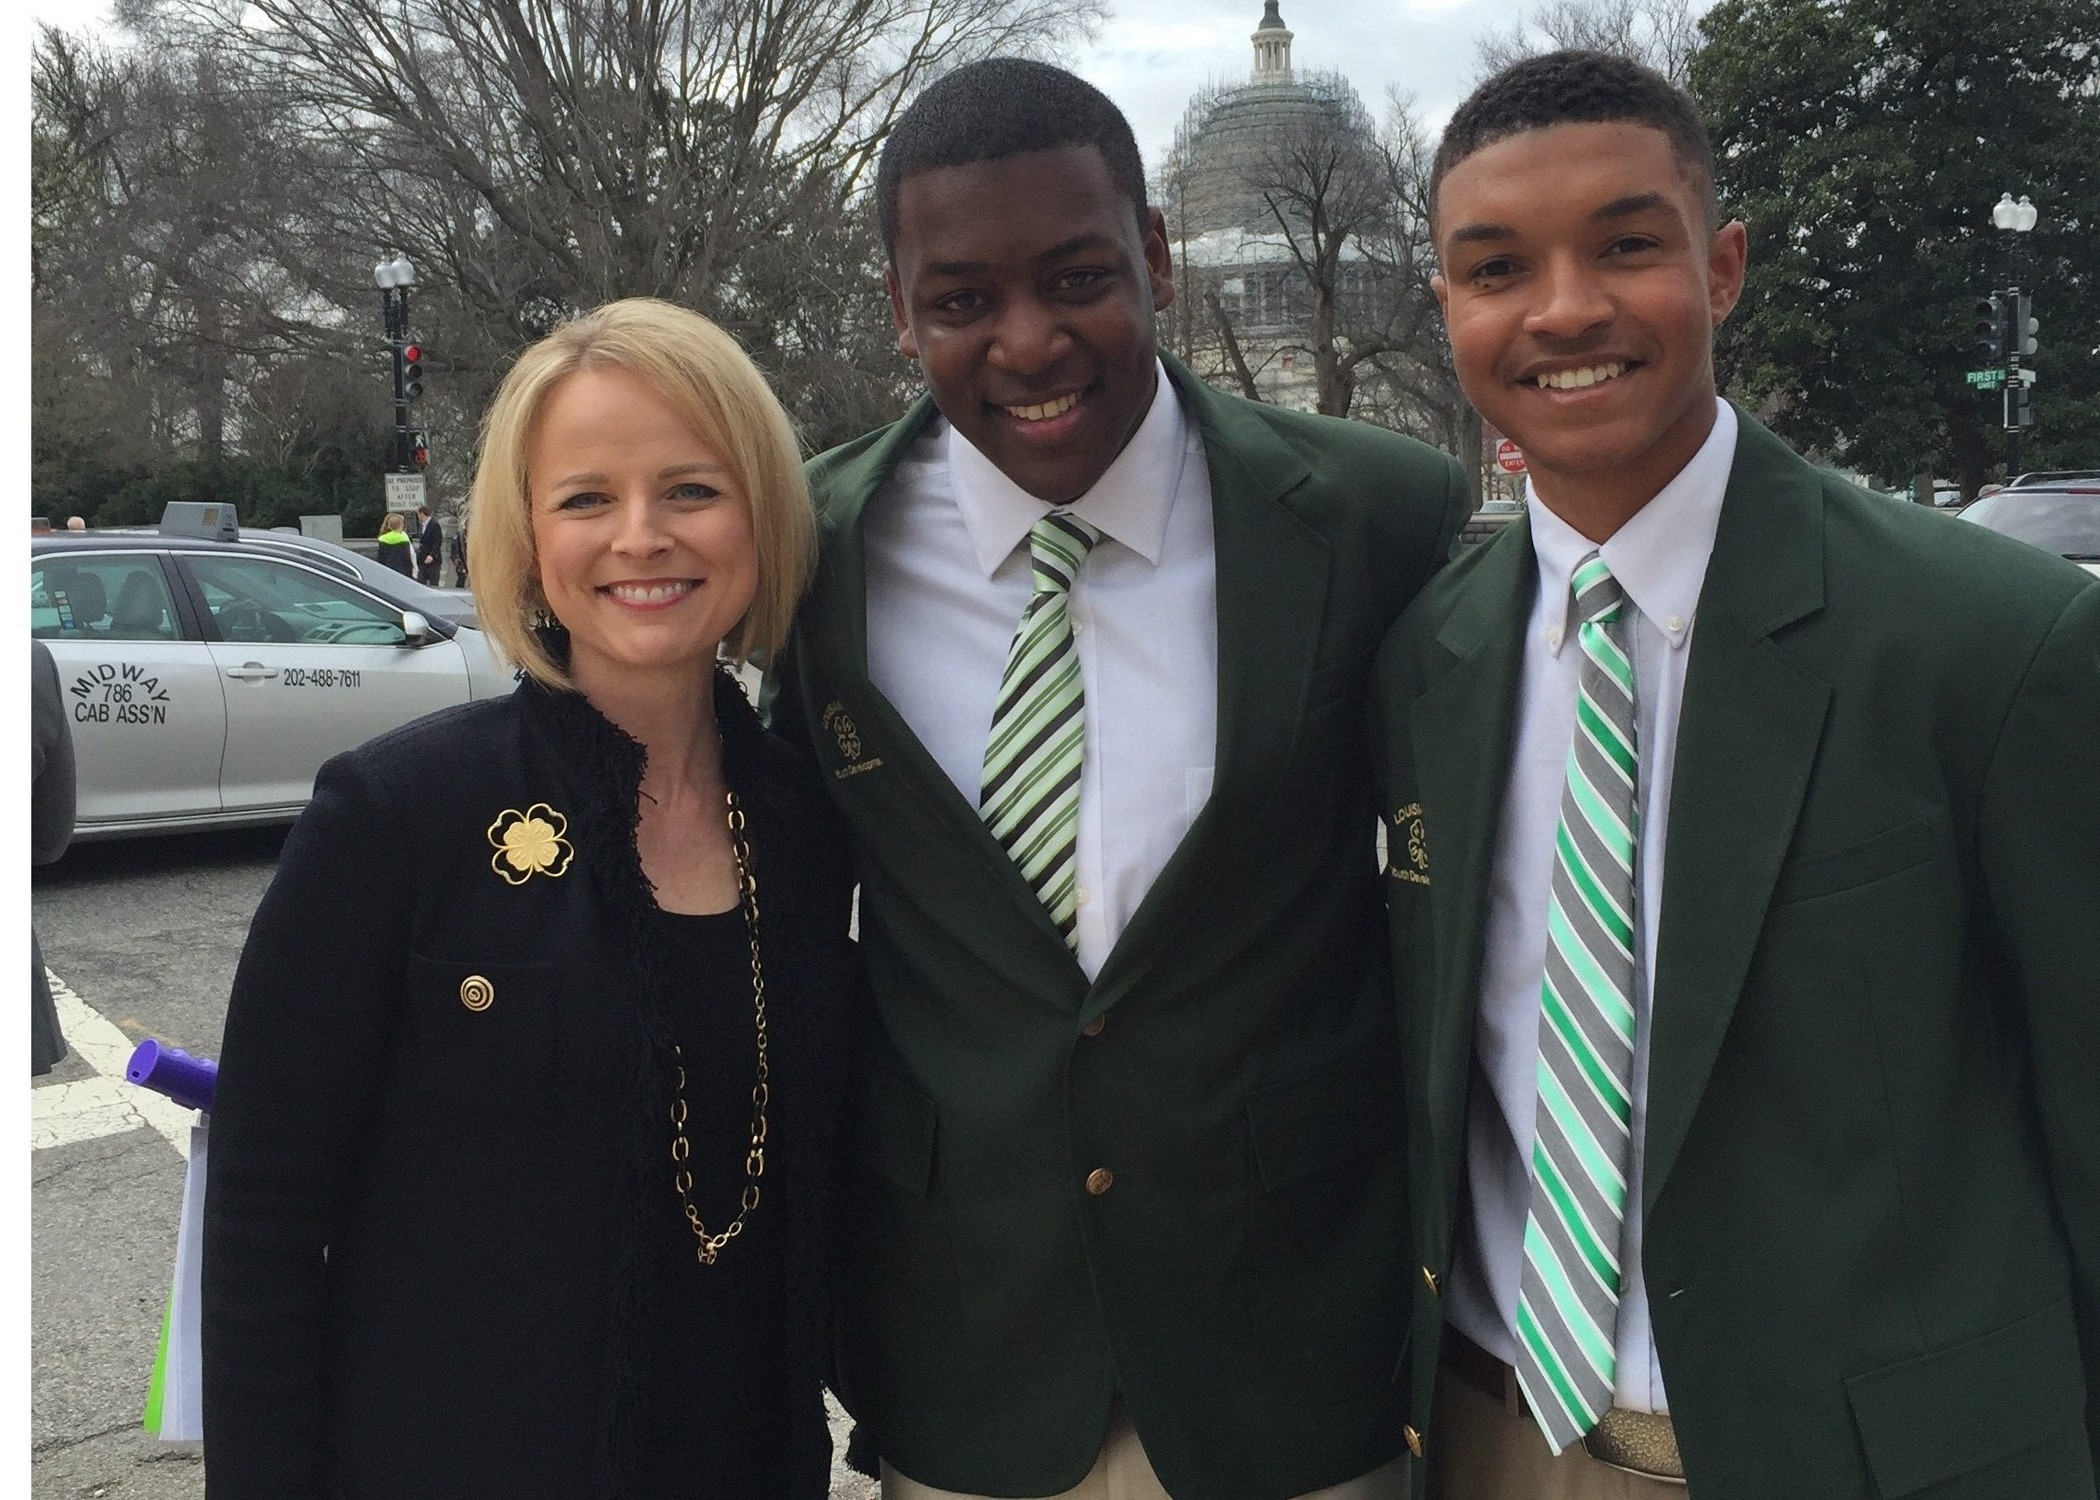 National Ag Day brings students to nation's capital